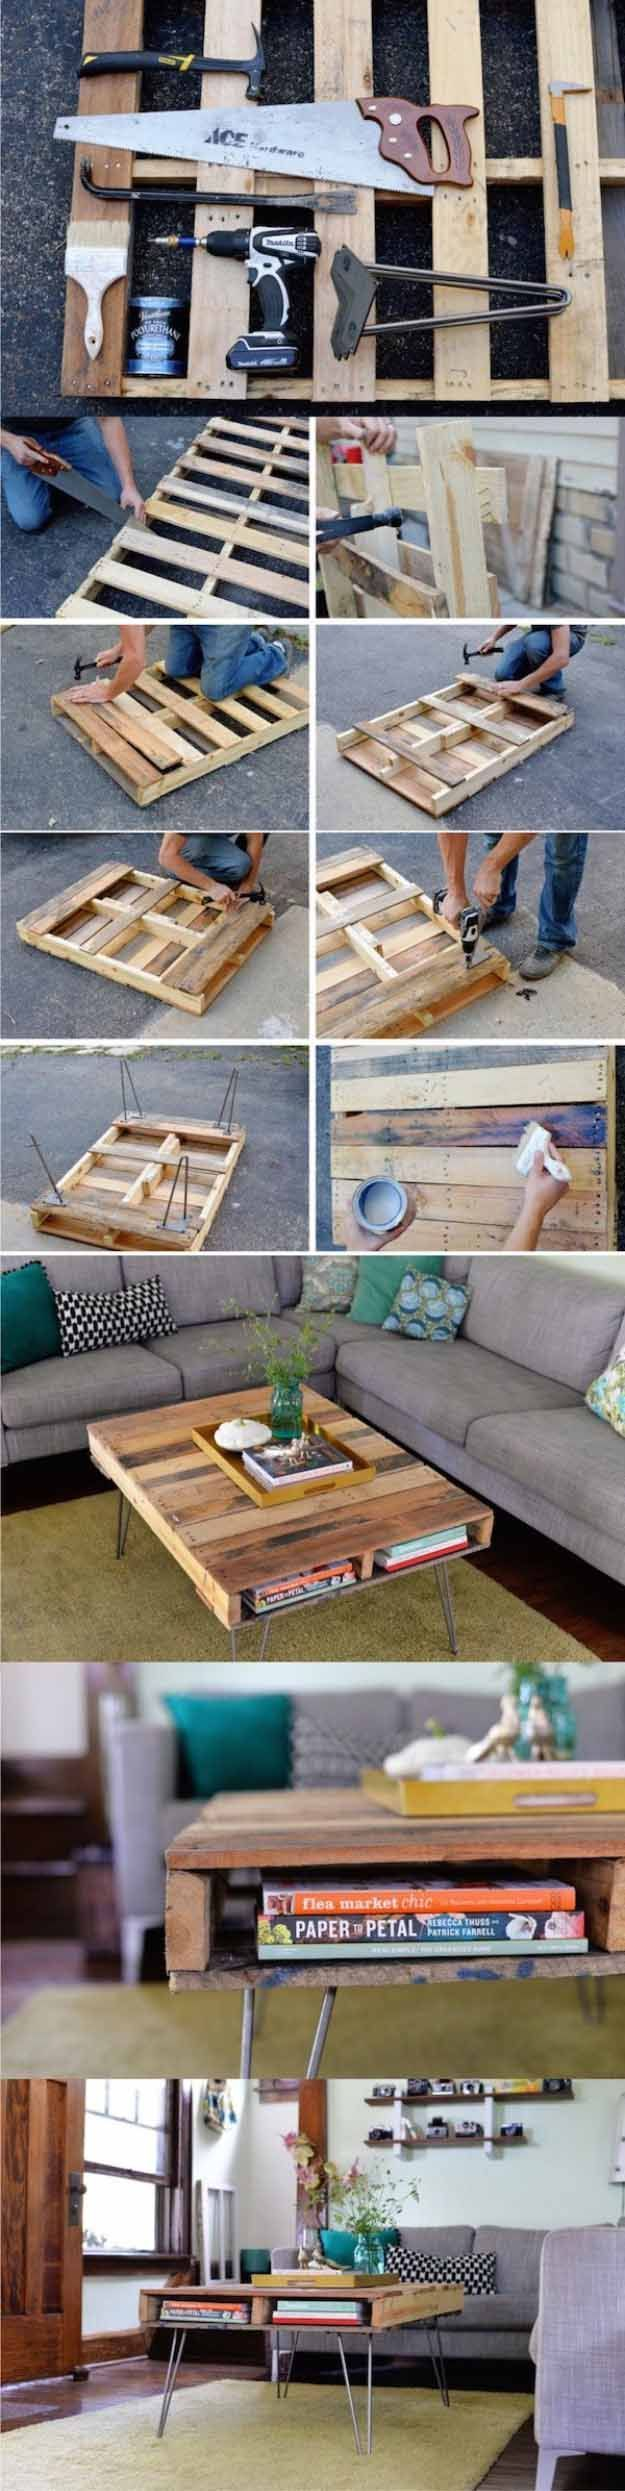 Best 25+ Furniture decor ideas on Pinterest | Diy house furniture ...